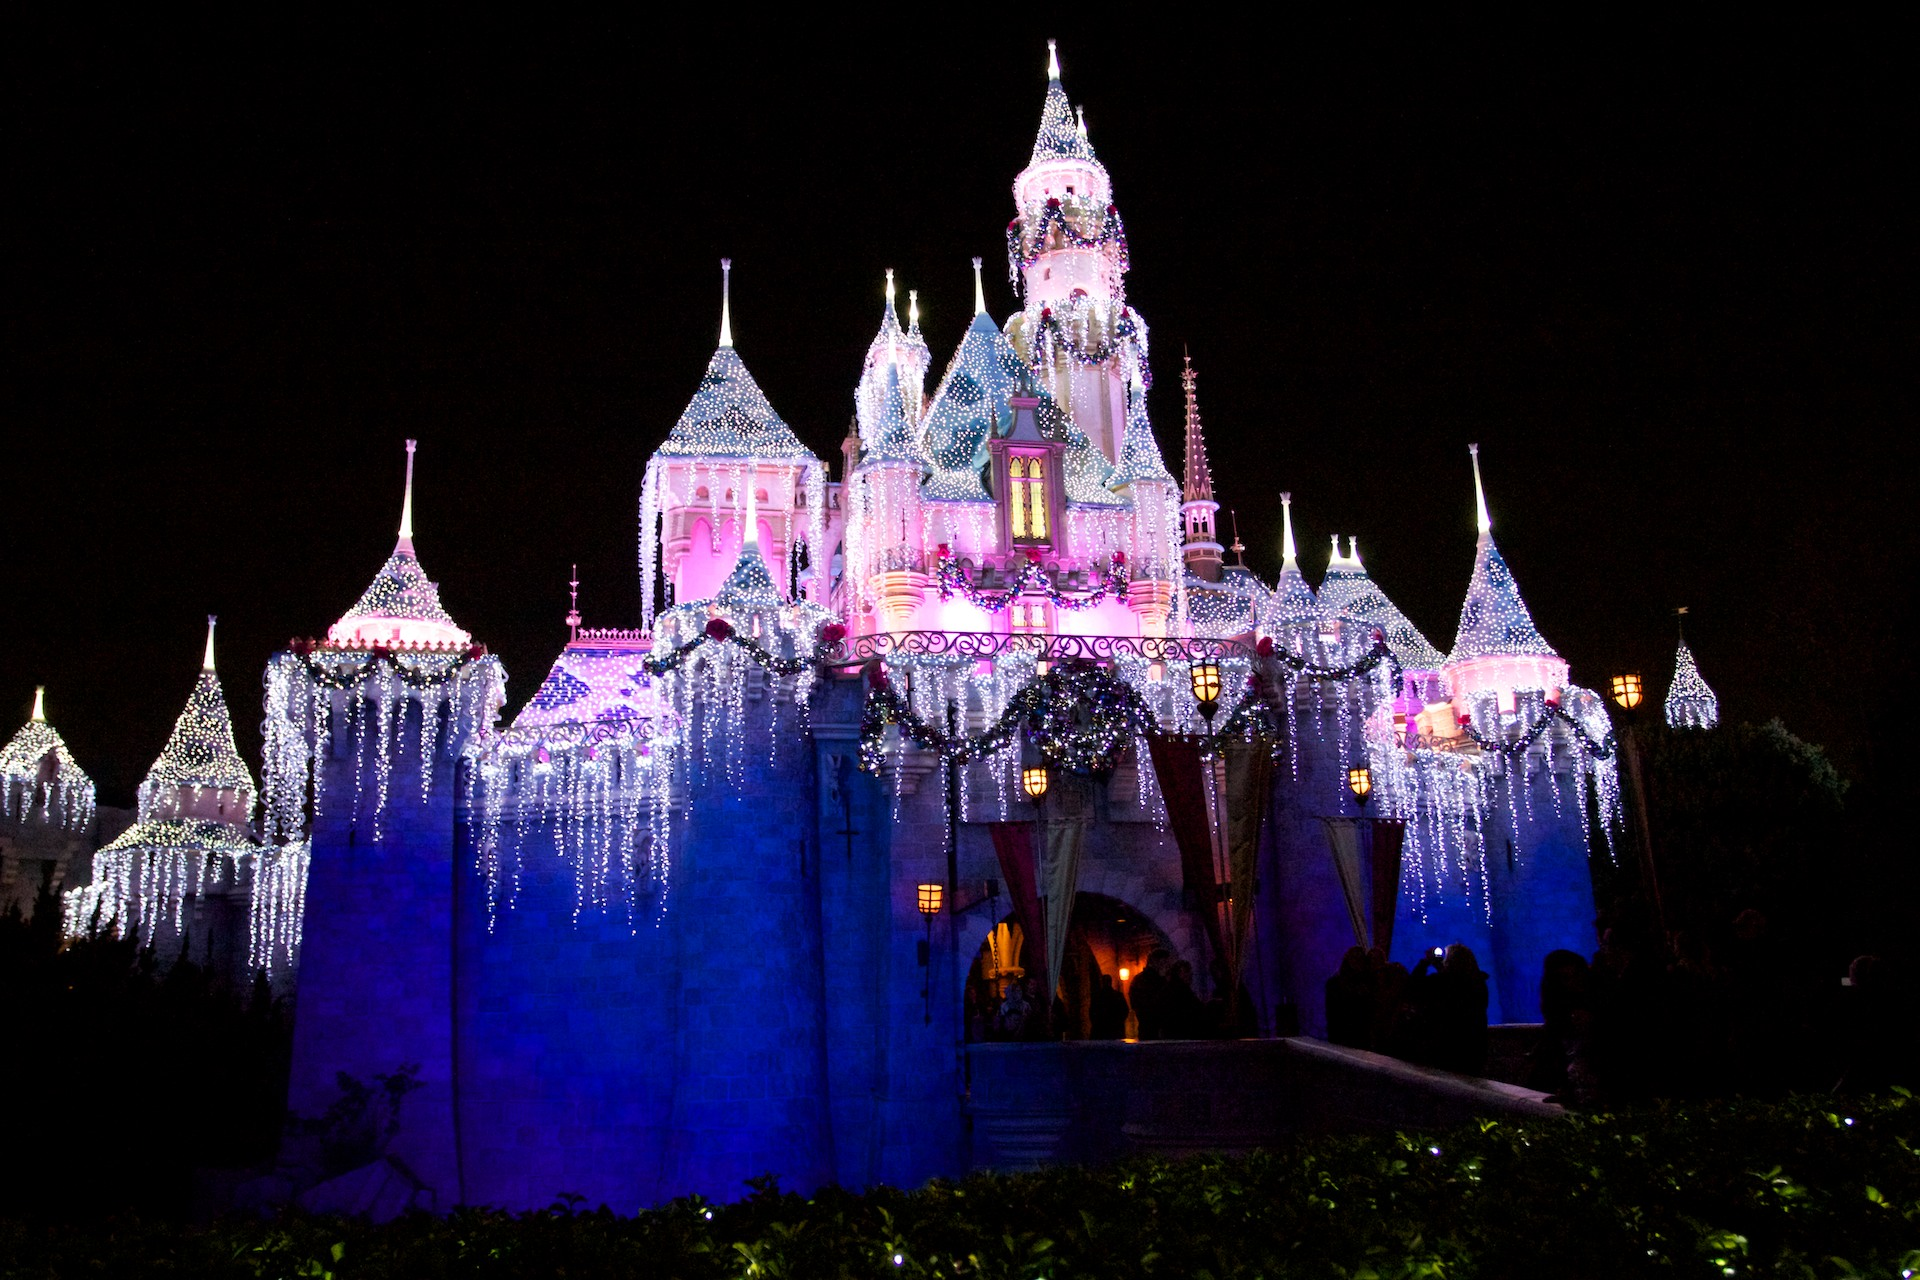 Sleeping Beauty Castle Disneyland During Christmas At Night Desktop